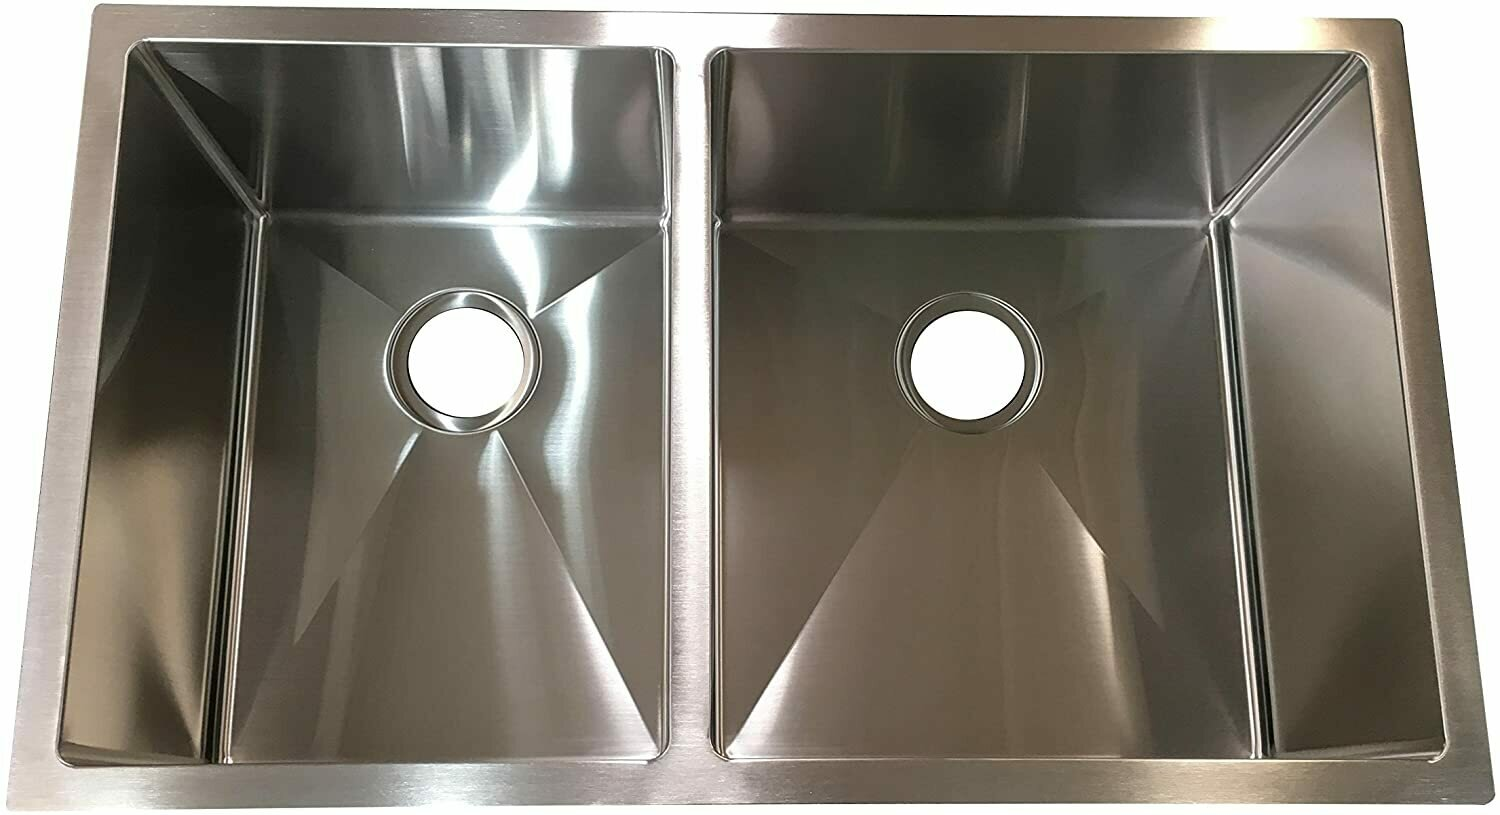 Hardy Stainless Steel Double Top Mount Sink